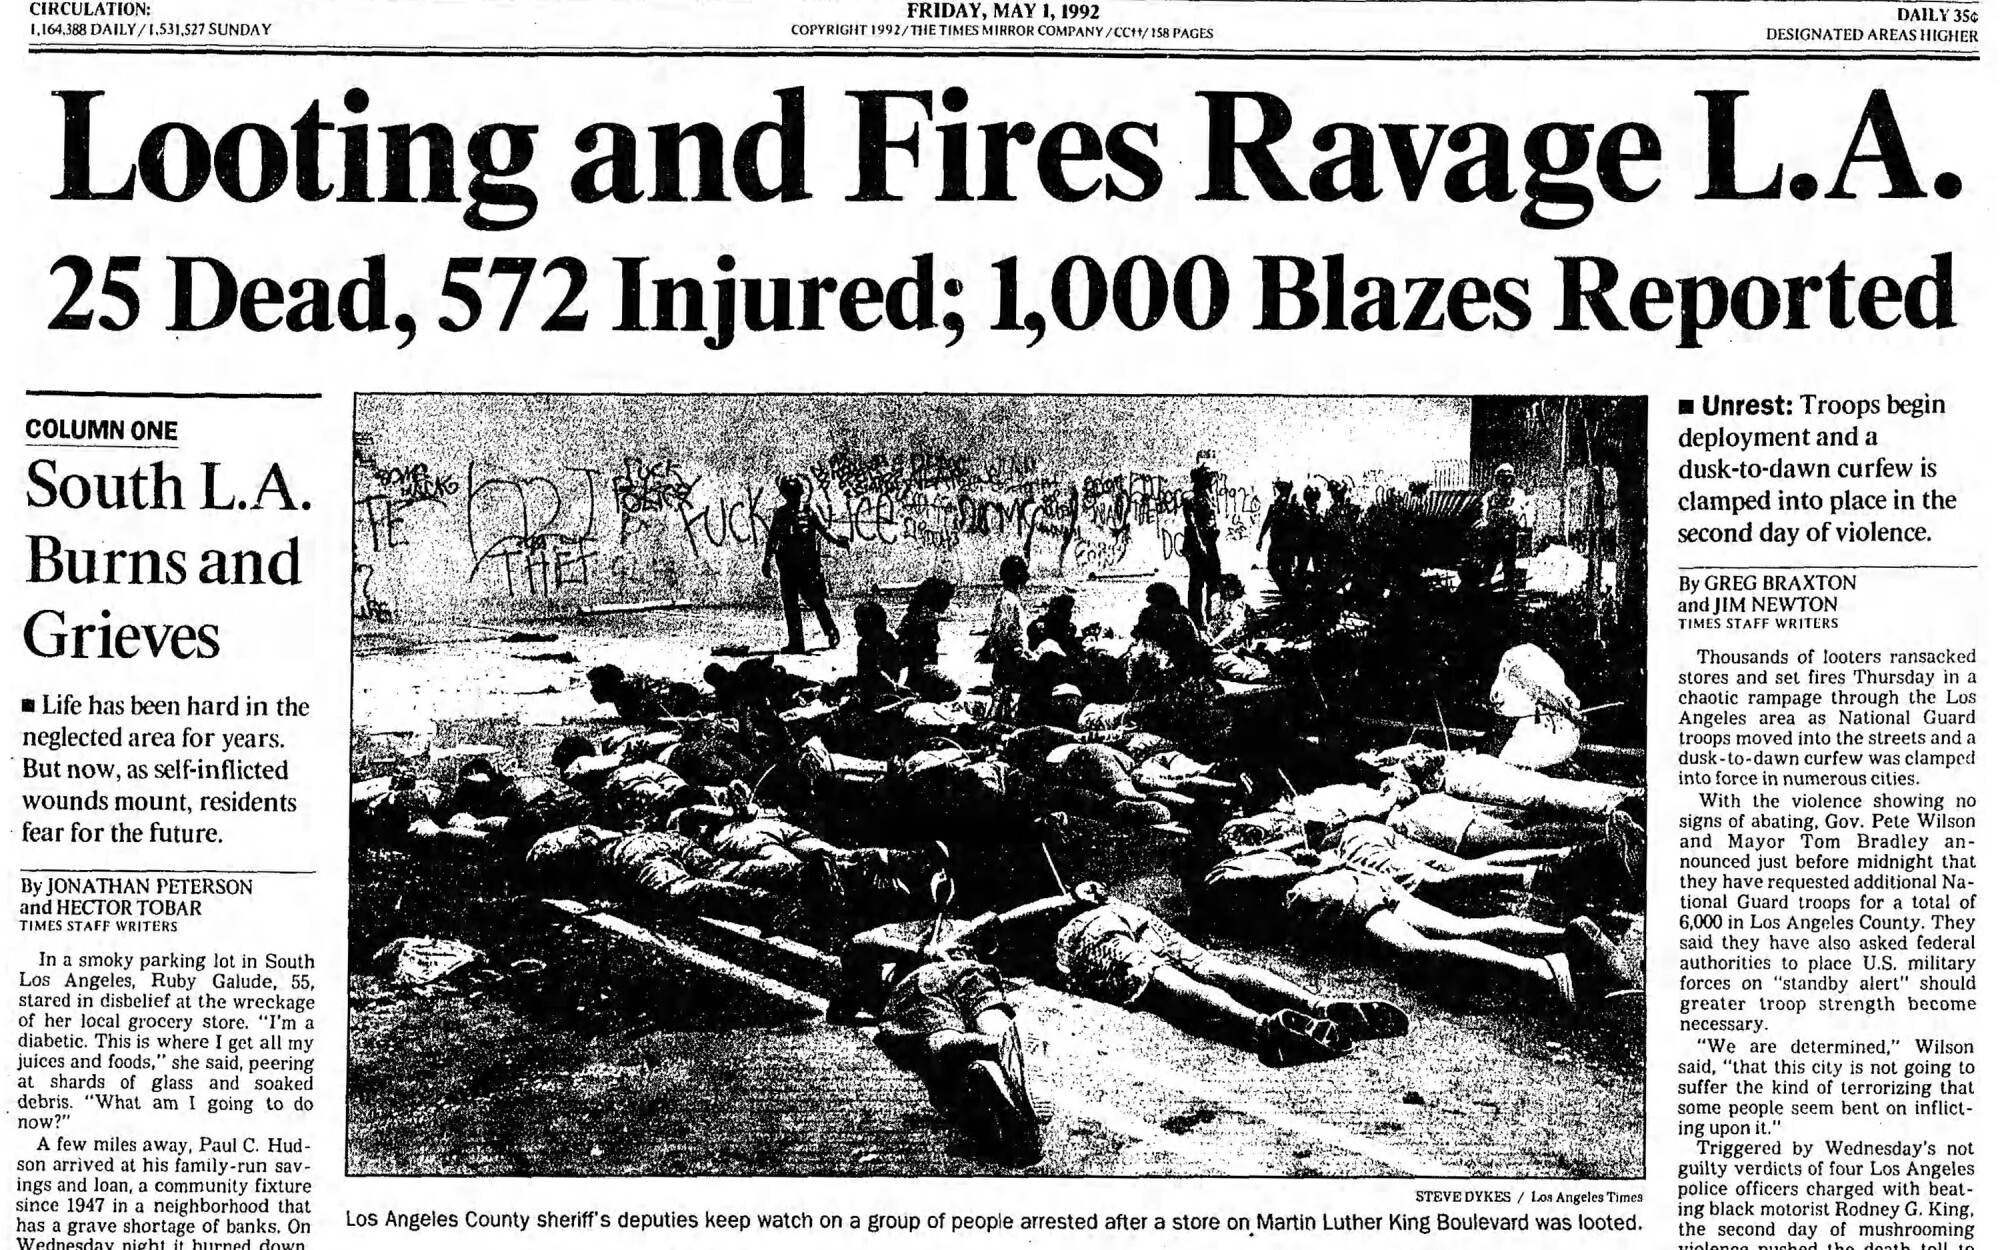 """1992 LA Times front page headline reads """"Looting and fires ravage LA. 25 dead, 572 injured; 1,000 blazes reported"""""""